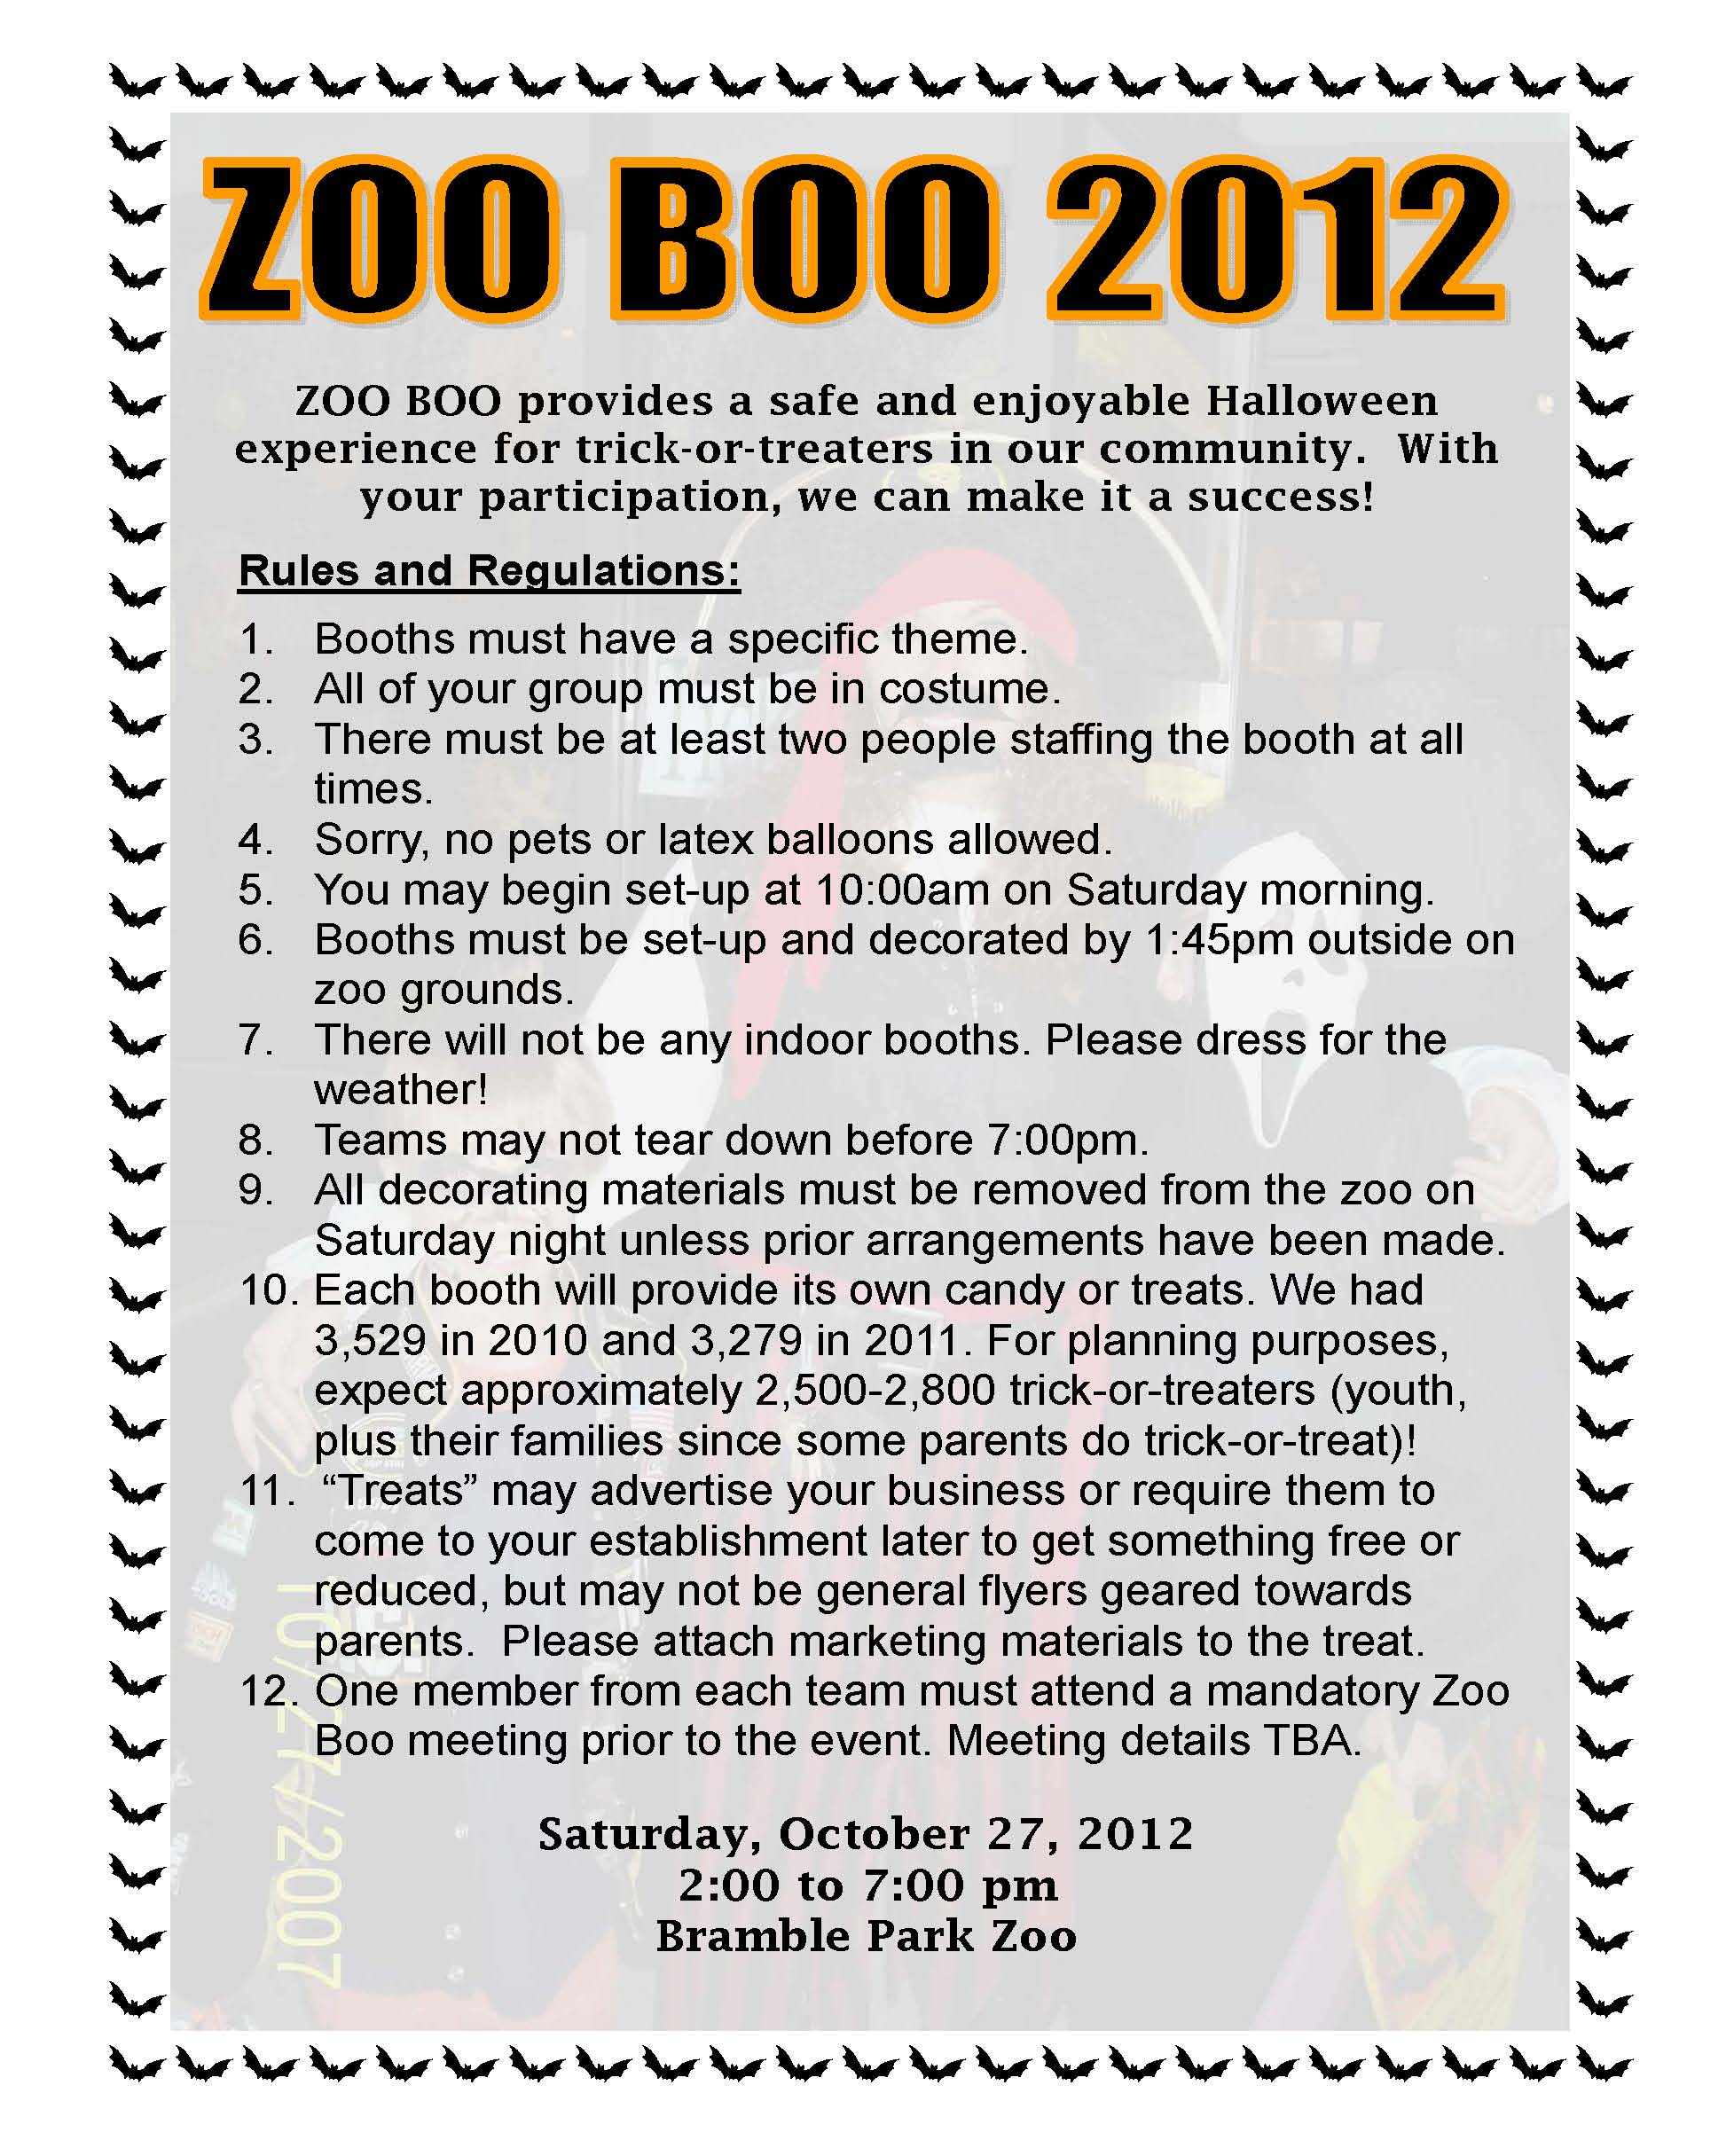 Zoo Boo 2012 Info & Rules